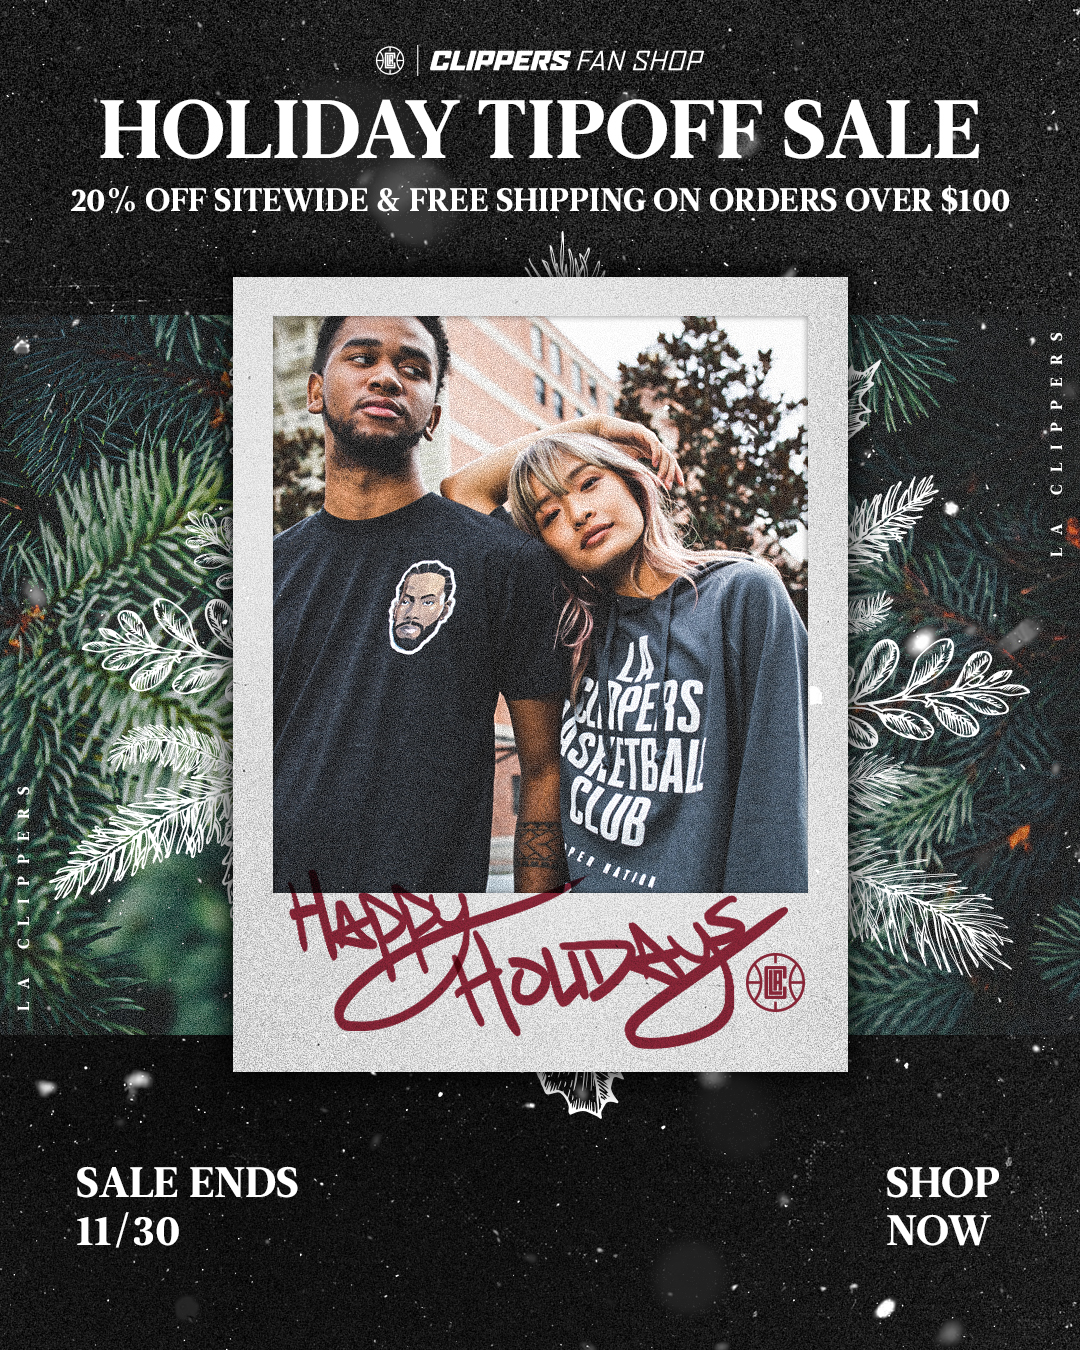 Clippers Fan Shop Holiday Tipoff Sale